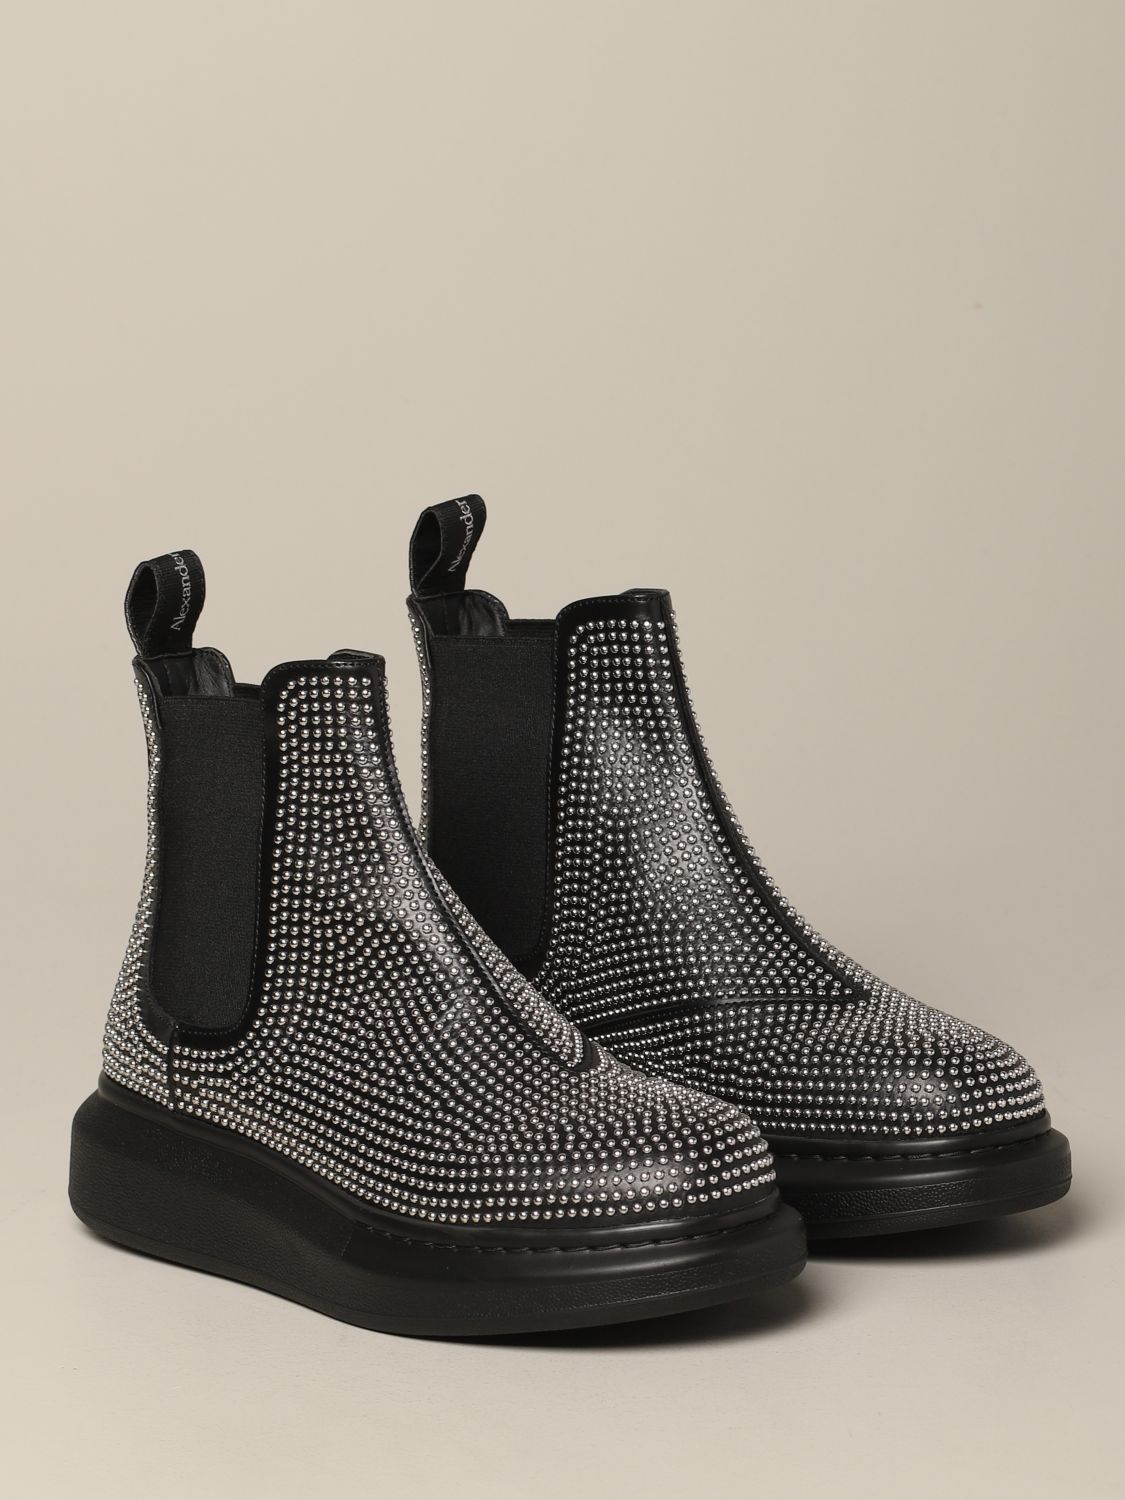 Flat ankle boots Mcq Mcqueen: Flat ankle boots women Mcq Mcqueen black 2